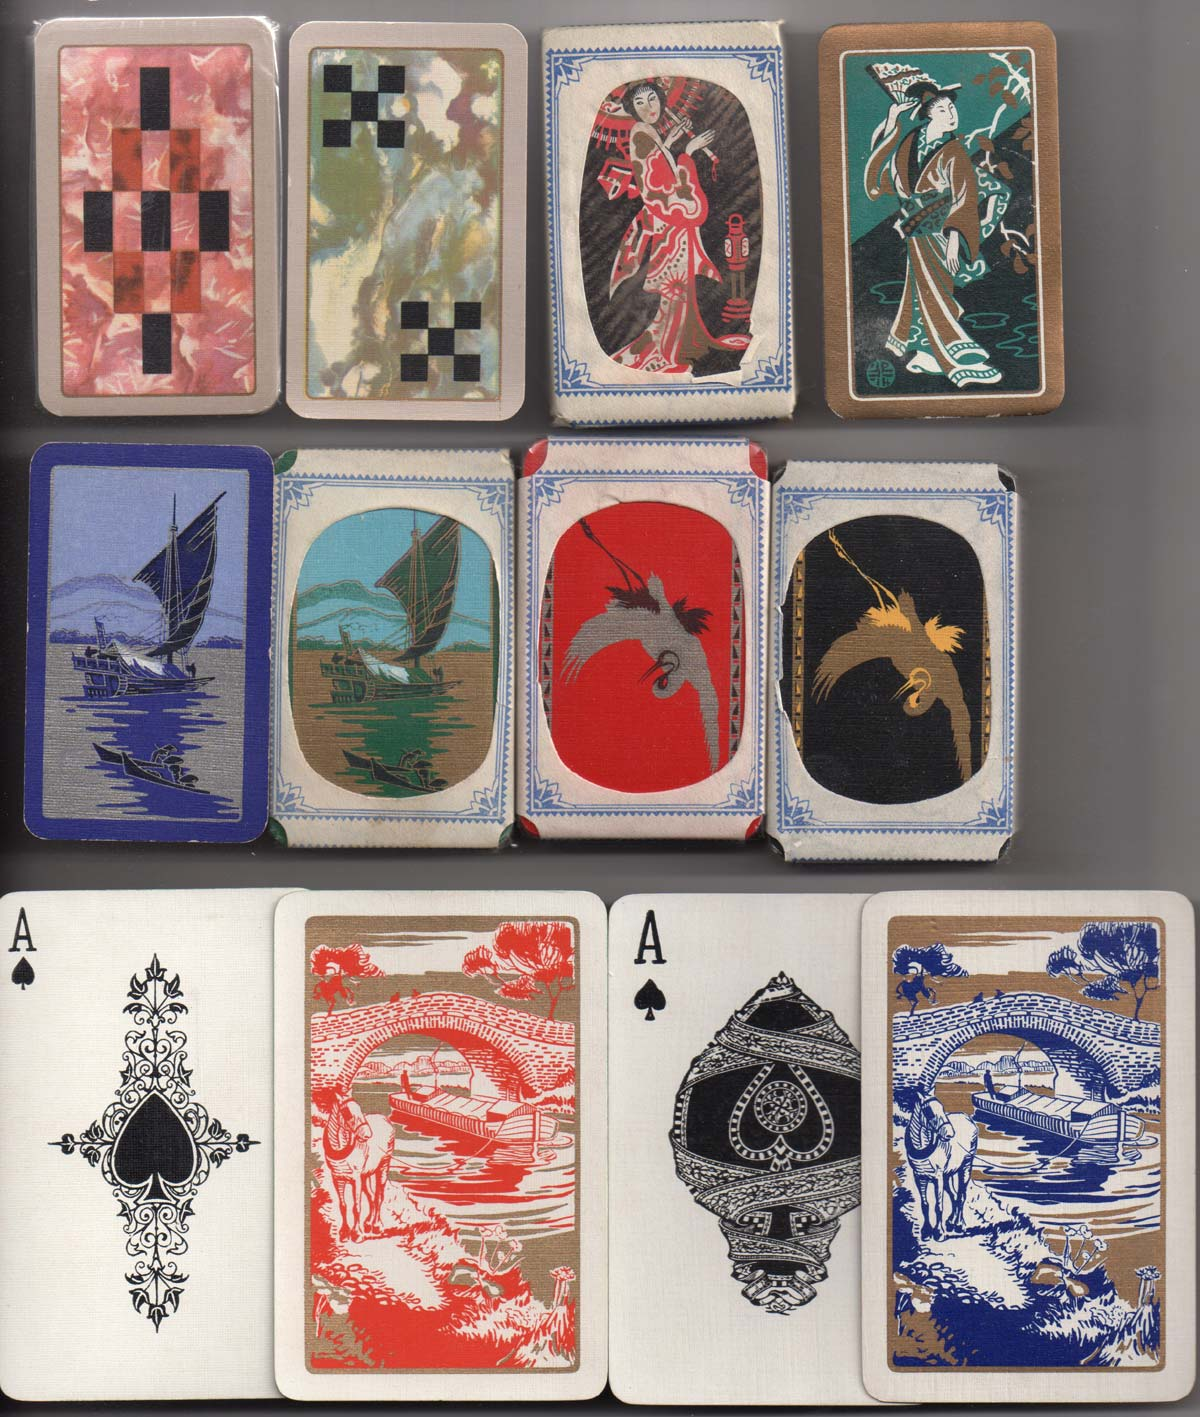 Playing cards printed by Mardon, De la Rue, Universal and Waddingtons for the Wills gift scheme, 1933-34